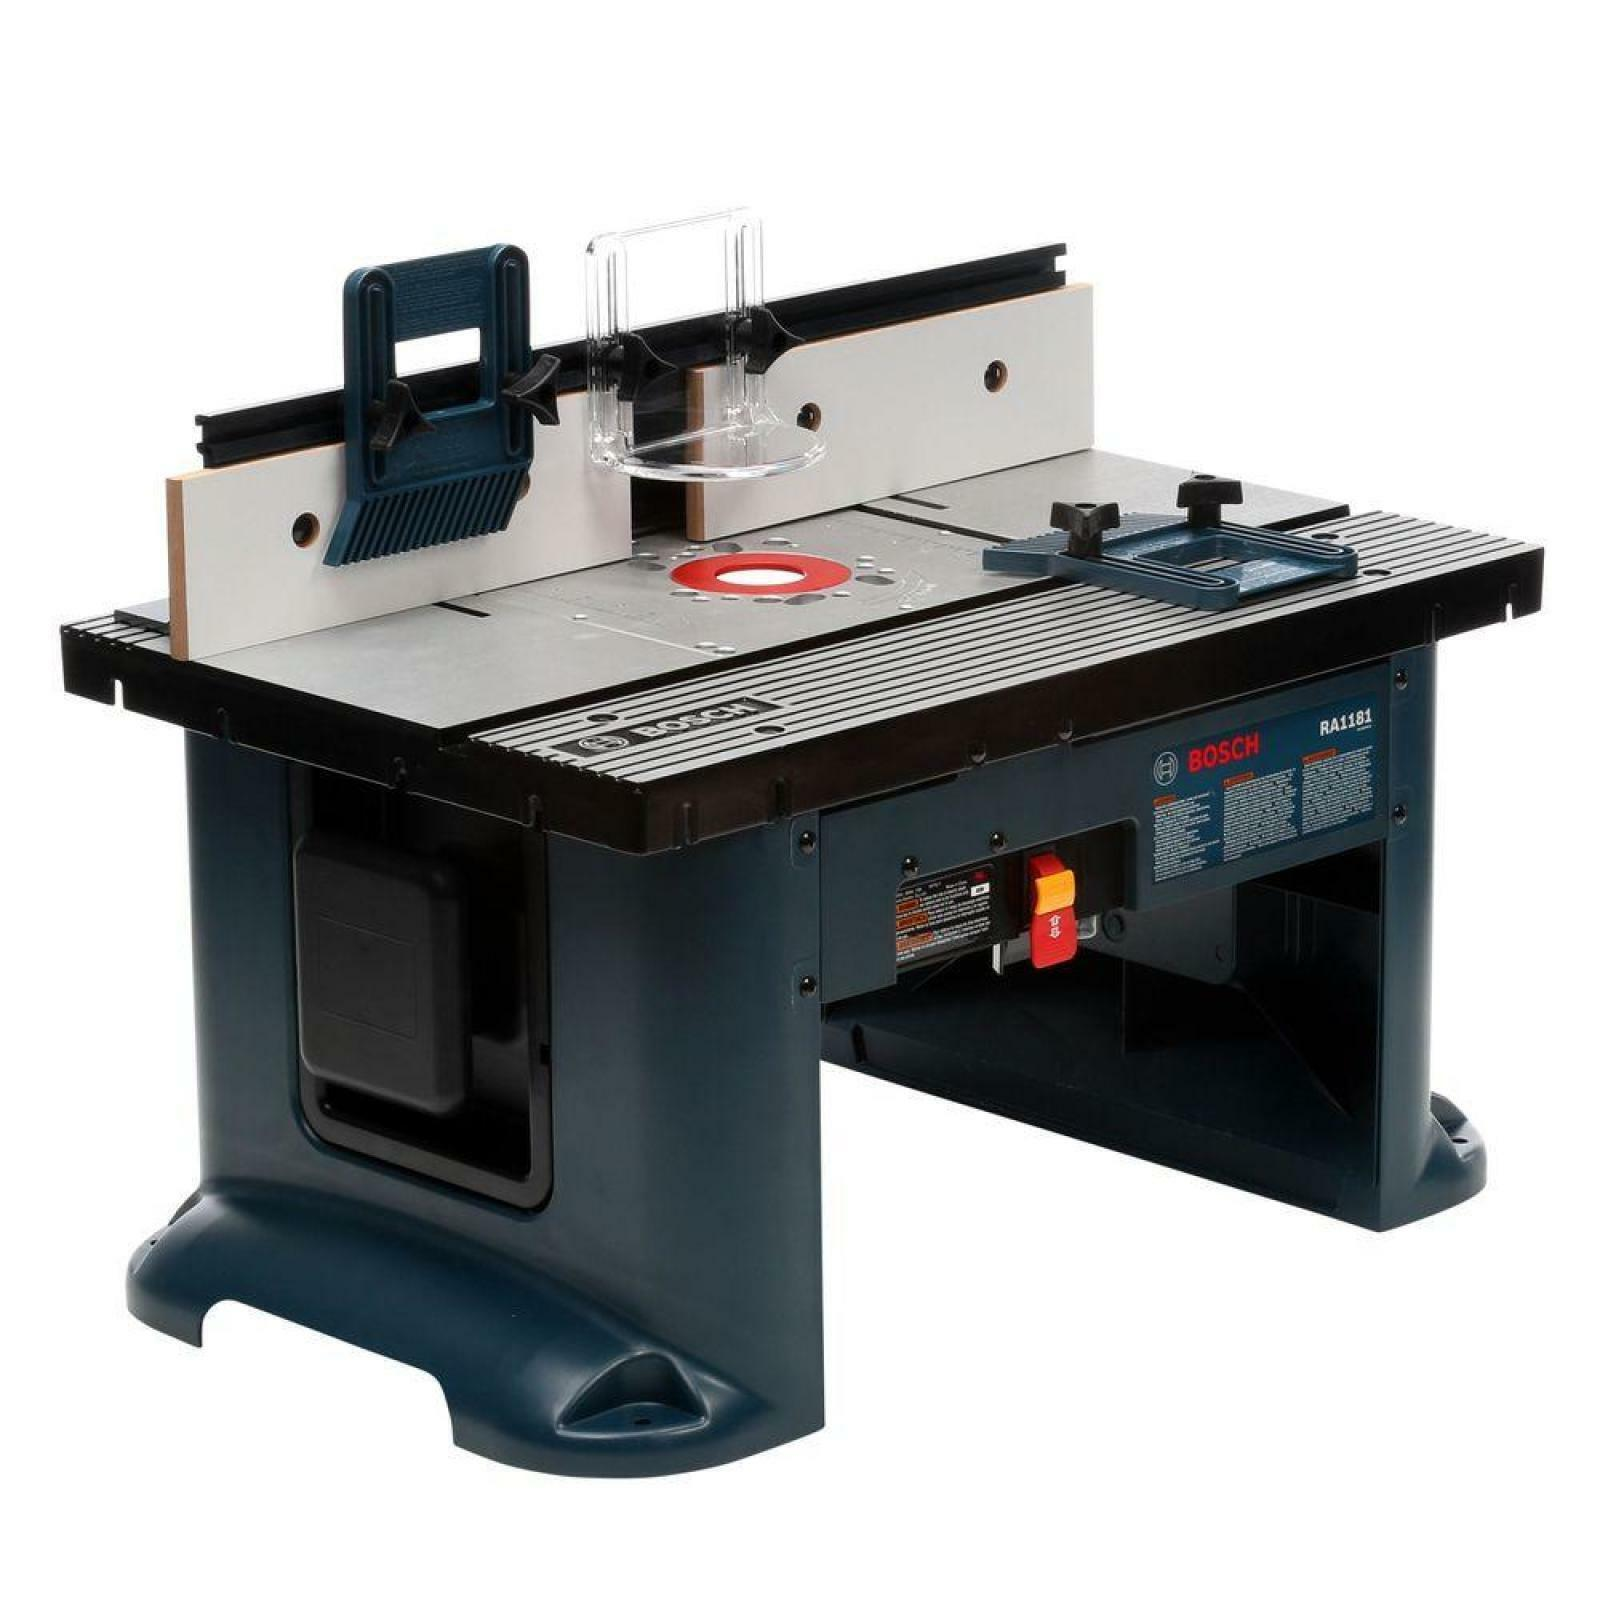 Bosch 15 Amp Corded 27 in x 18 in Aluminum Top Benchtop Router Table with 2-1